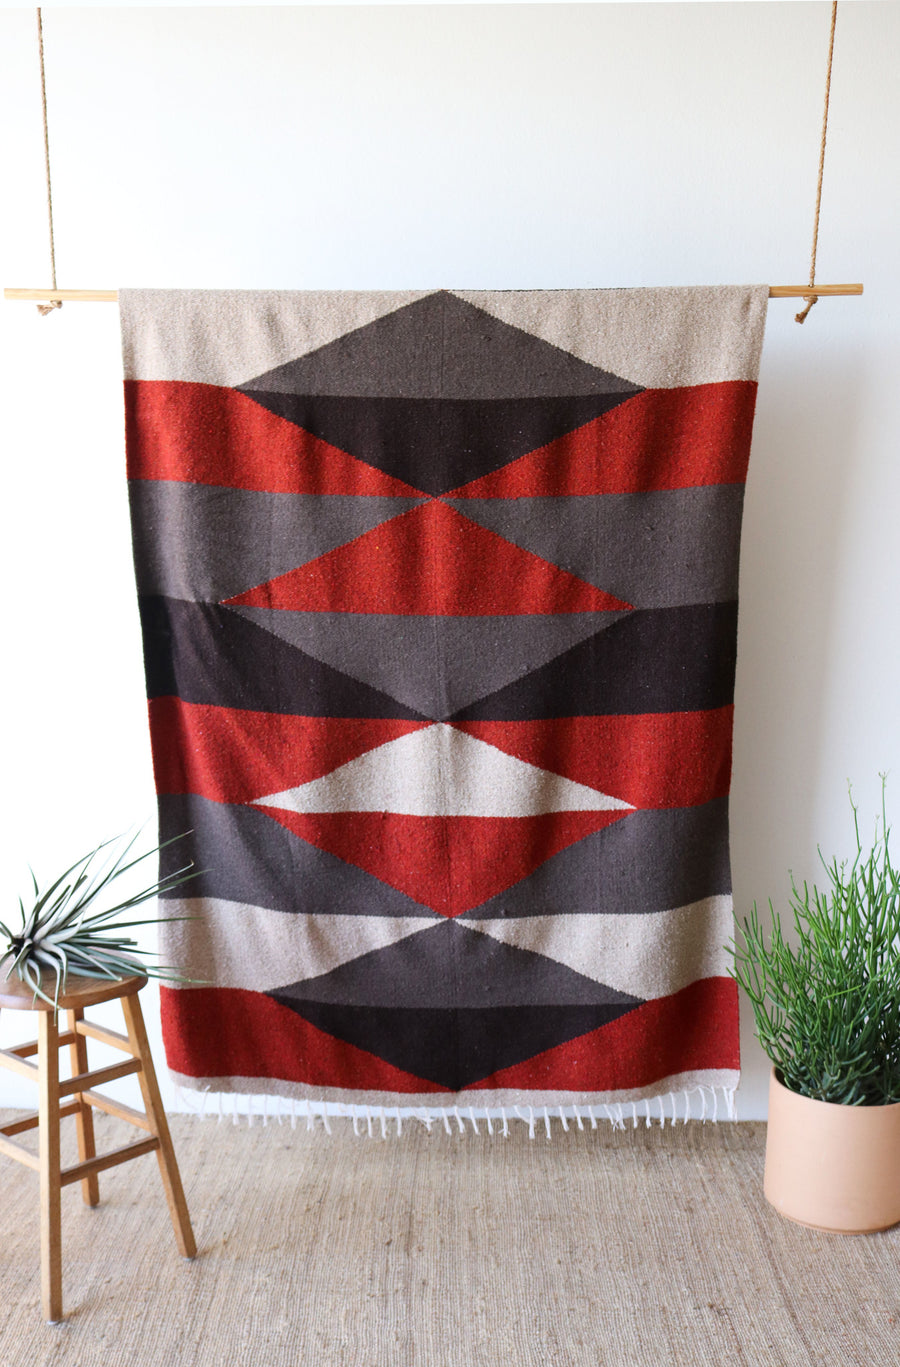 Mojave Diamond (Oversized Limited Edition) // Handwoven Blanket